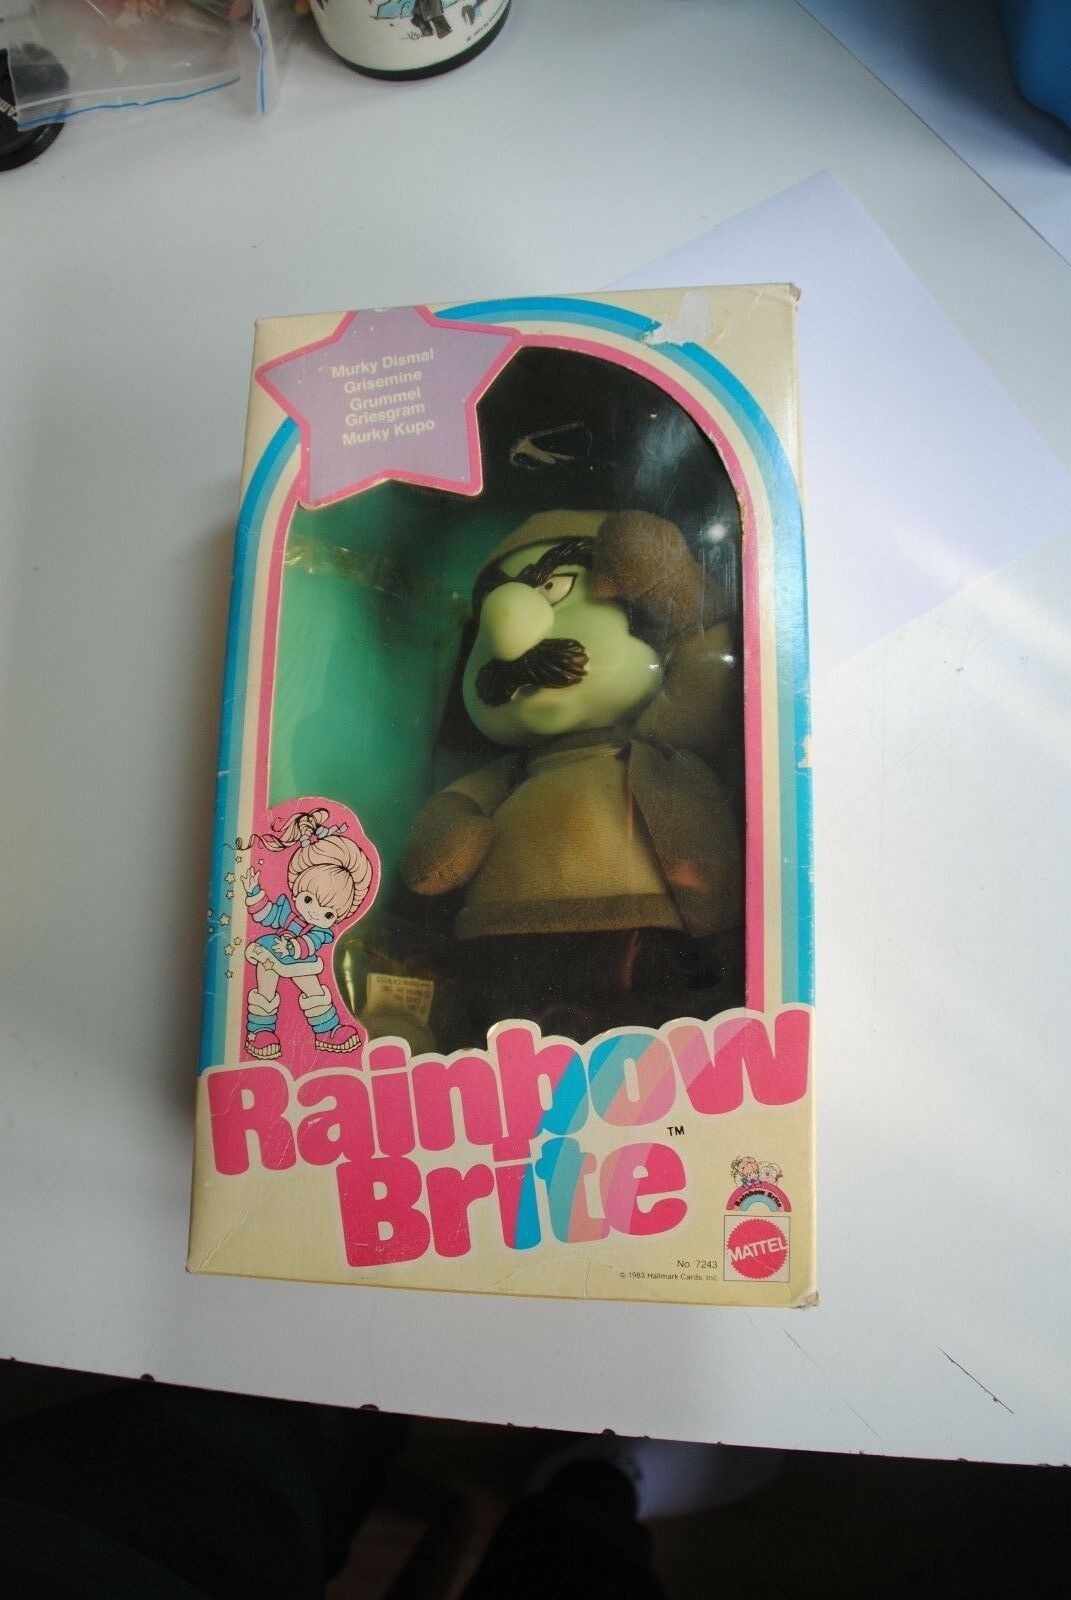 1983 vintage Mattel MURKY DISMAL   plush toy Rainbow Brite doll BOXED -NRFB